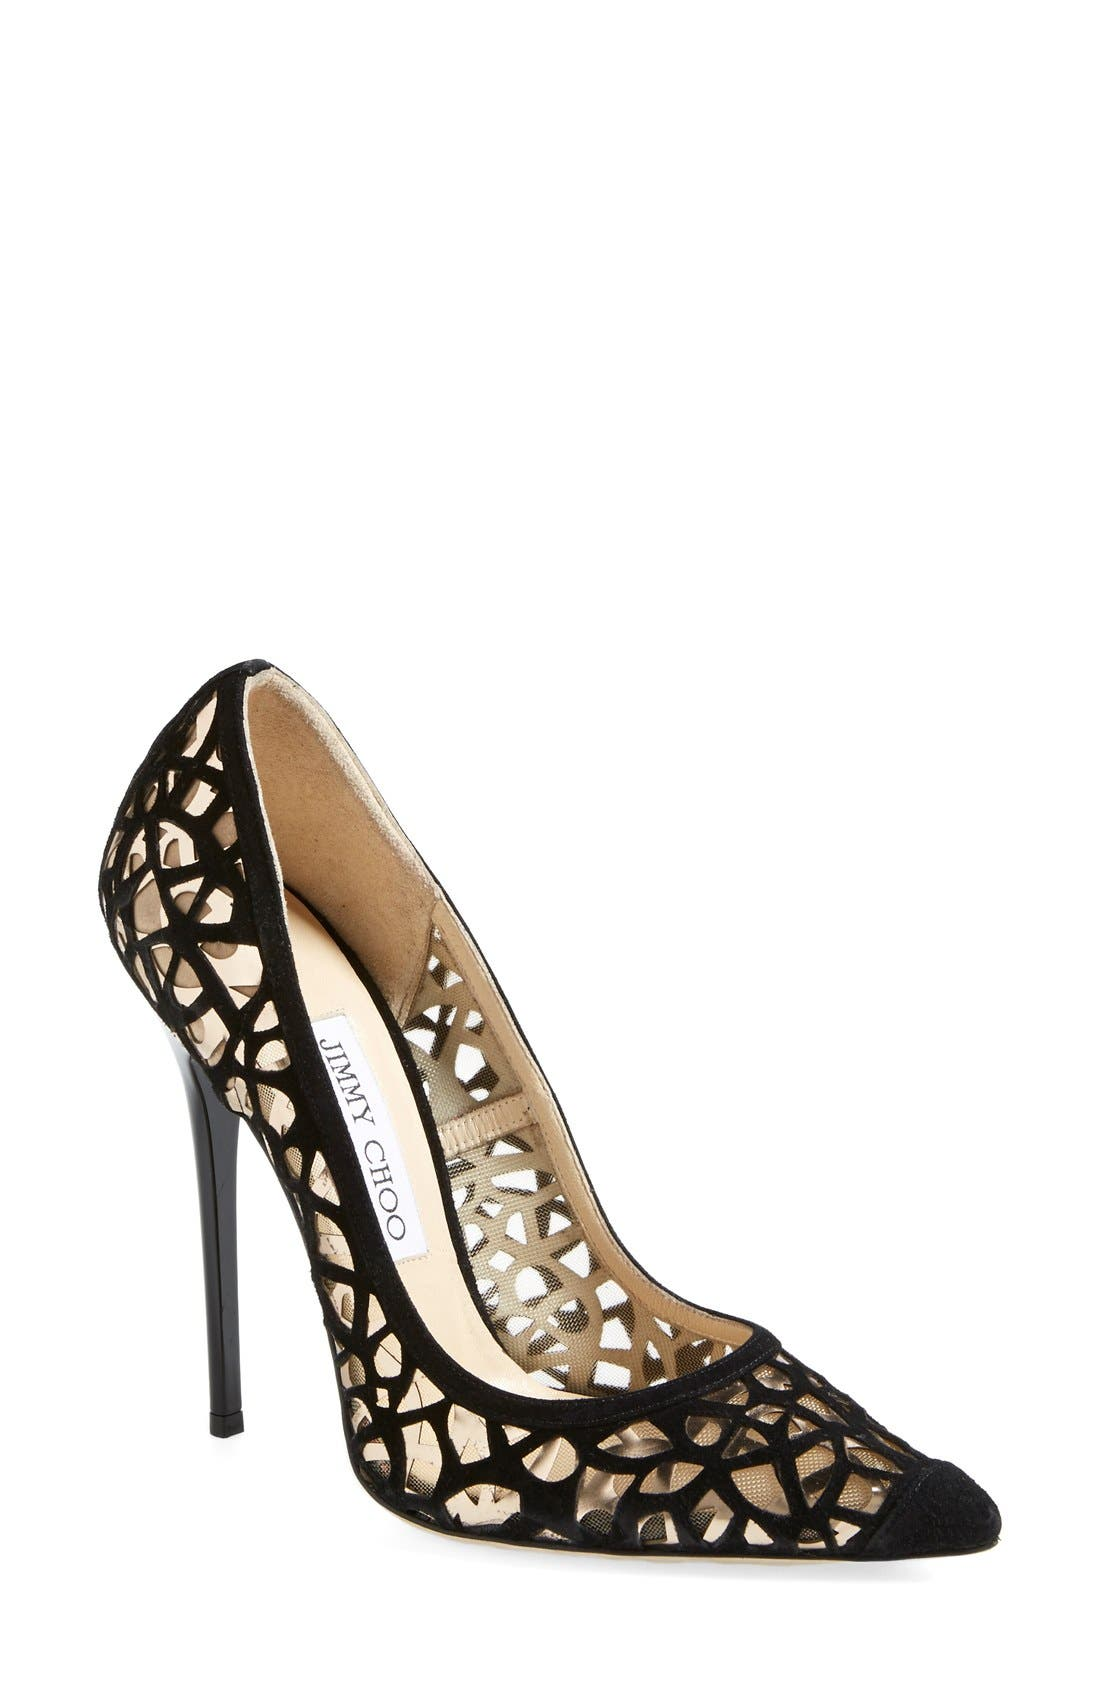 Alternate Image 1 Selected - Jimmy Choo 'Anouk' Pointy Toe Pump (Women)